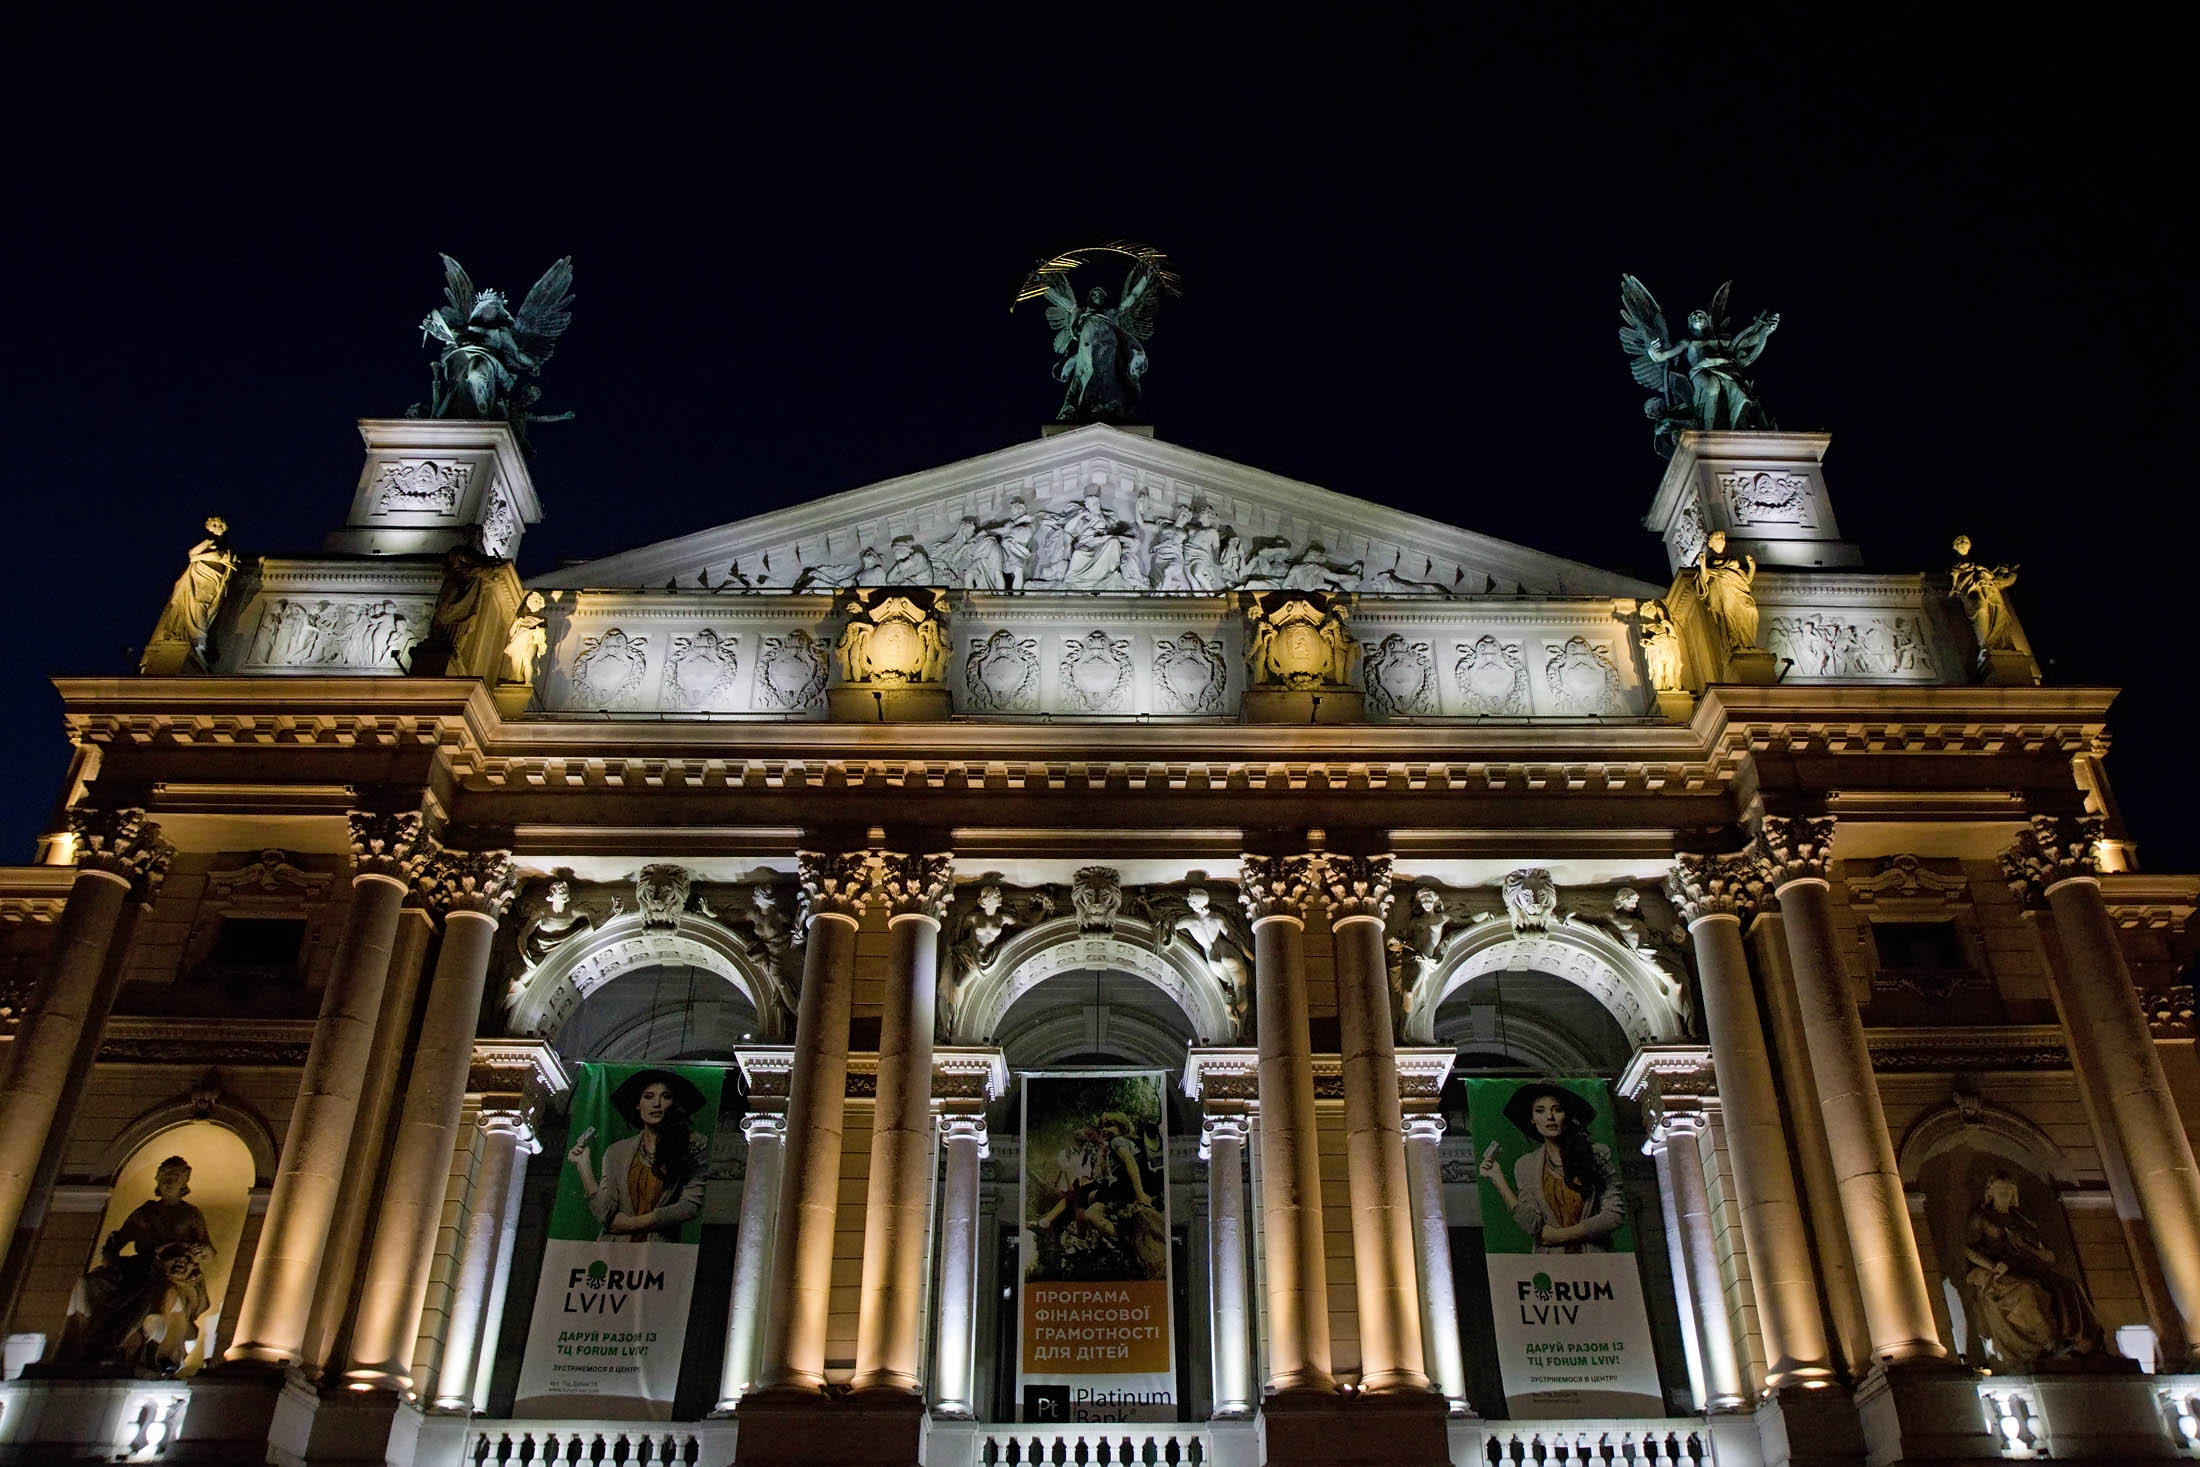 Lviv Opera House at night. Photo credit: Richard Fejfar